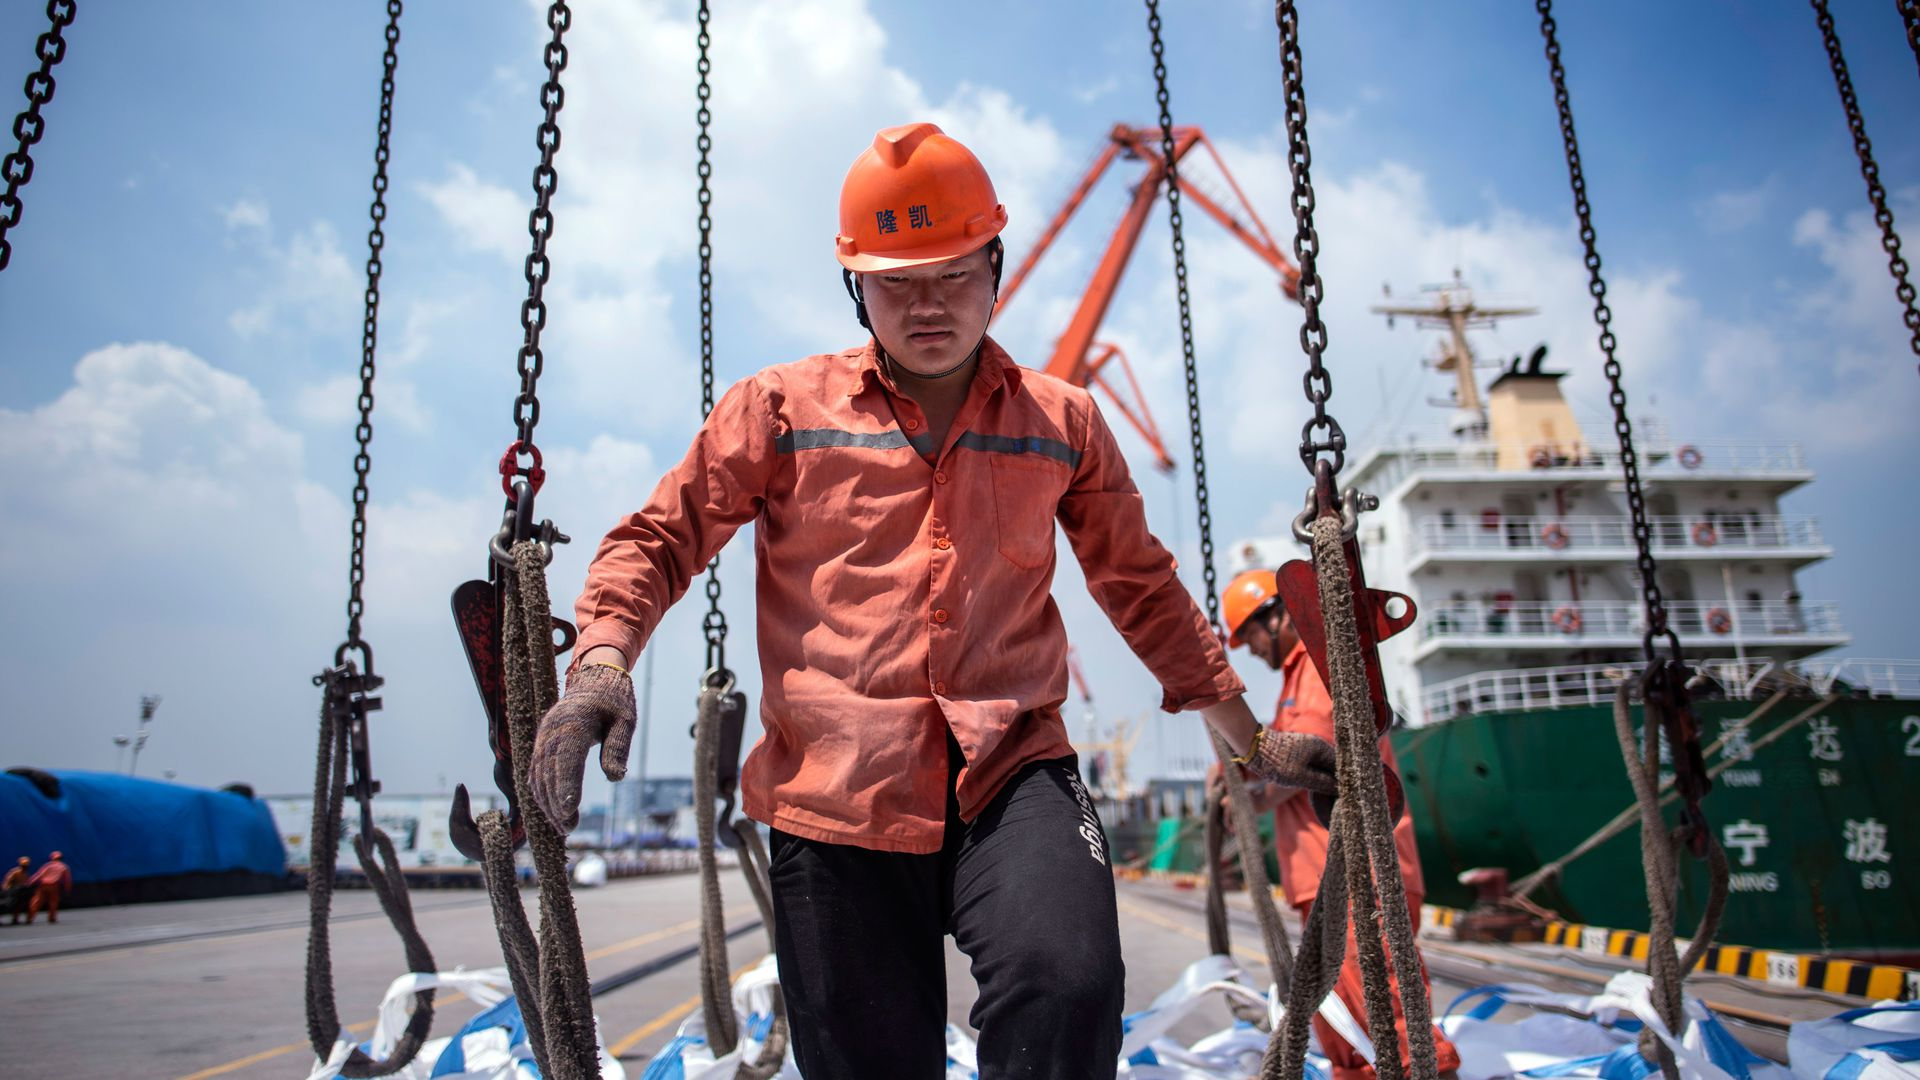 Chinese worker unloading bags of chemicals at a port